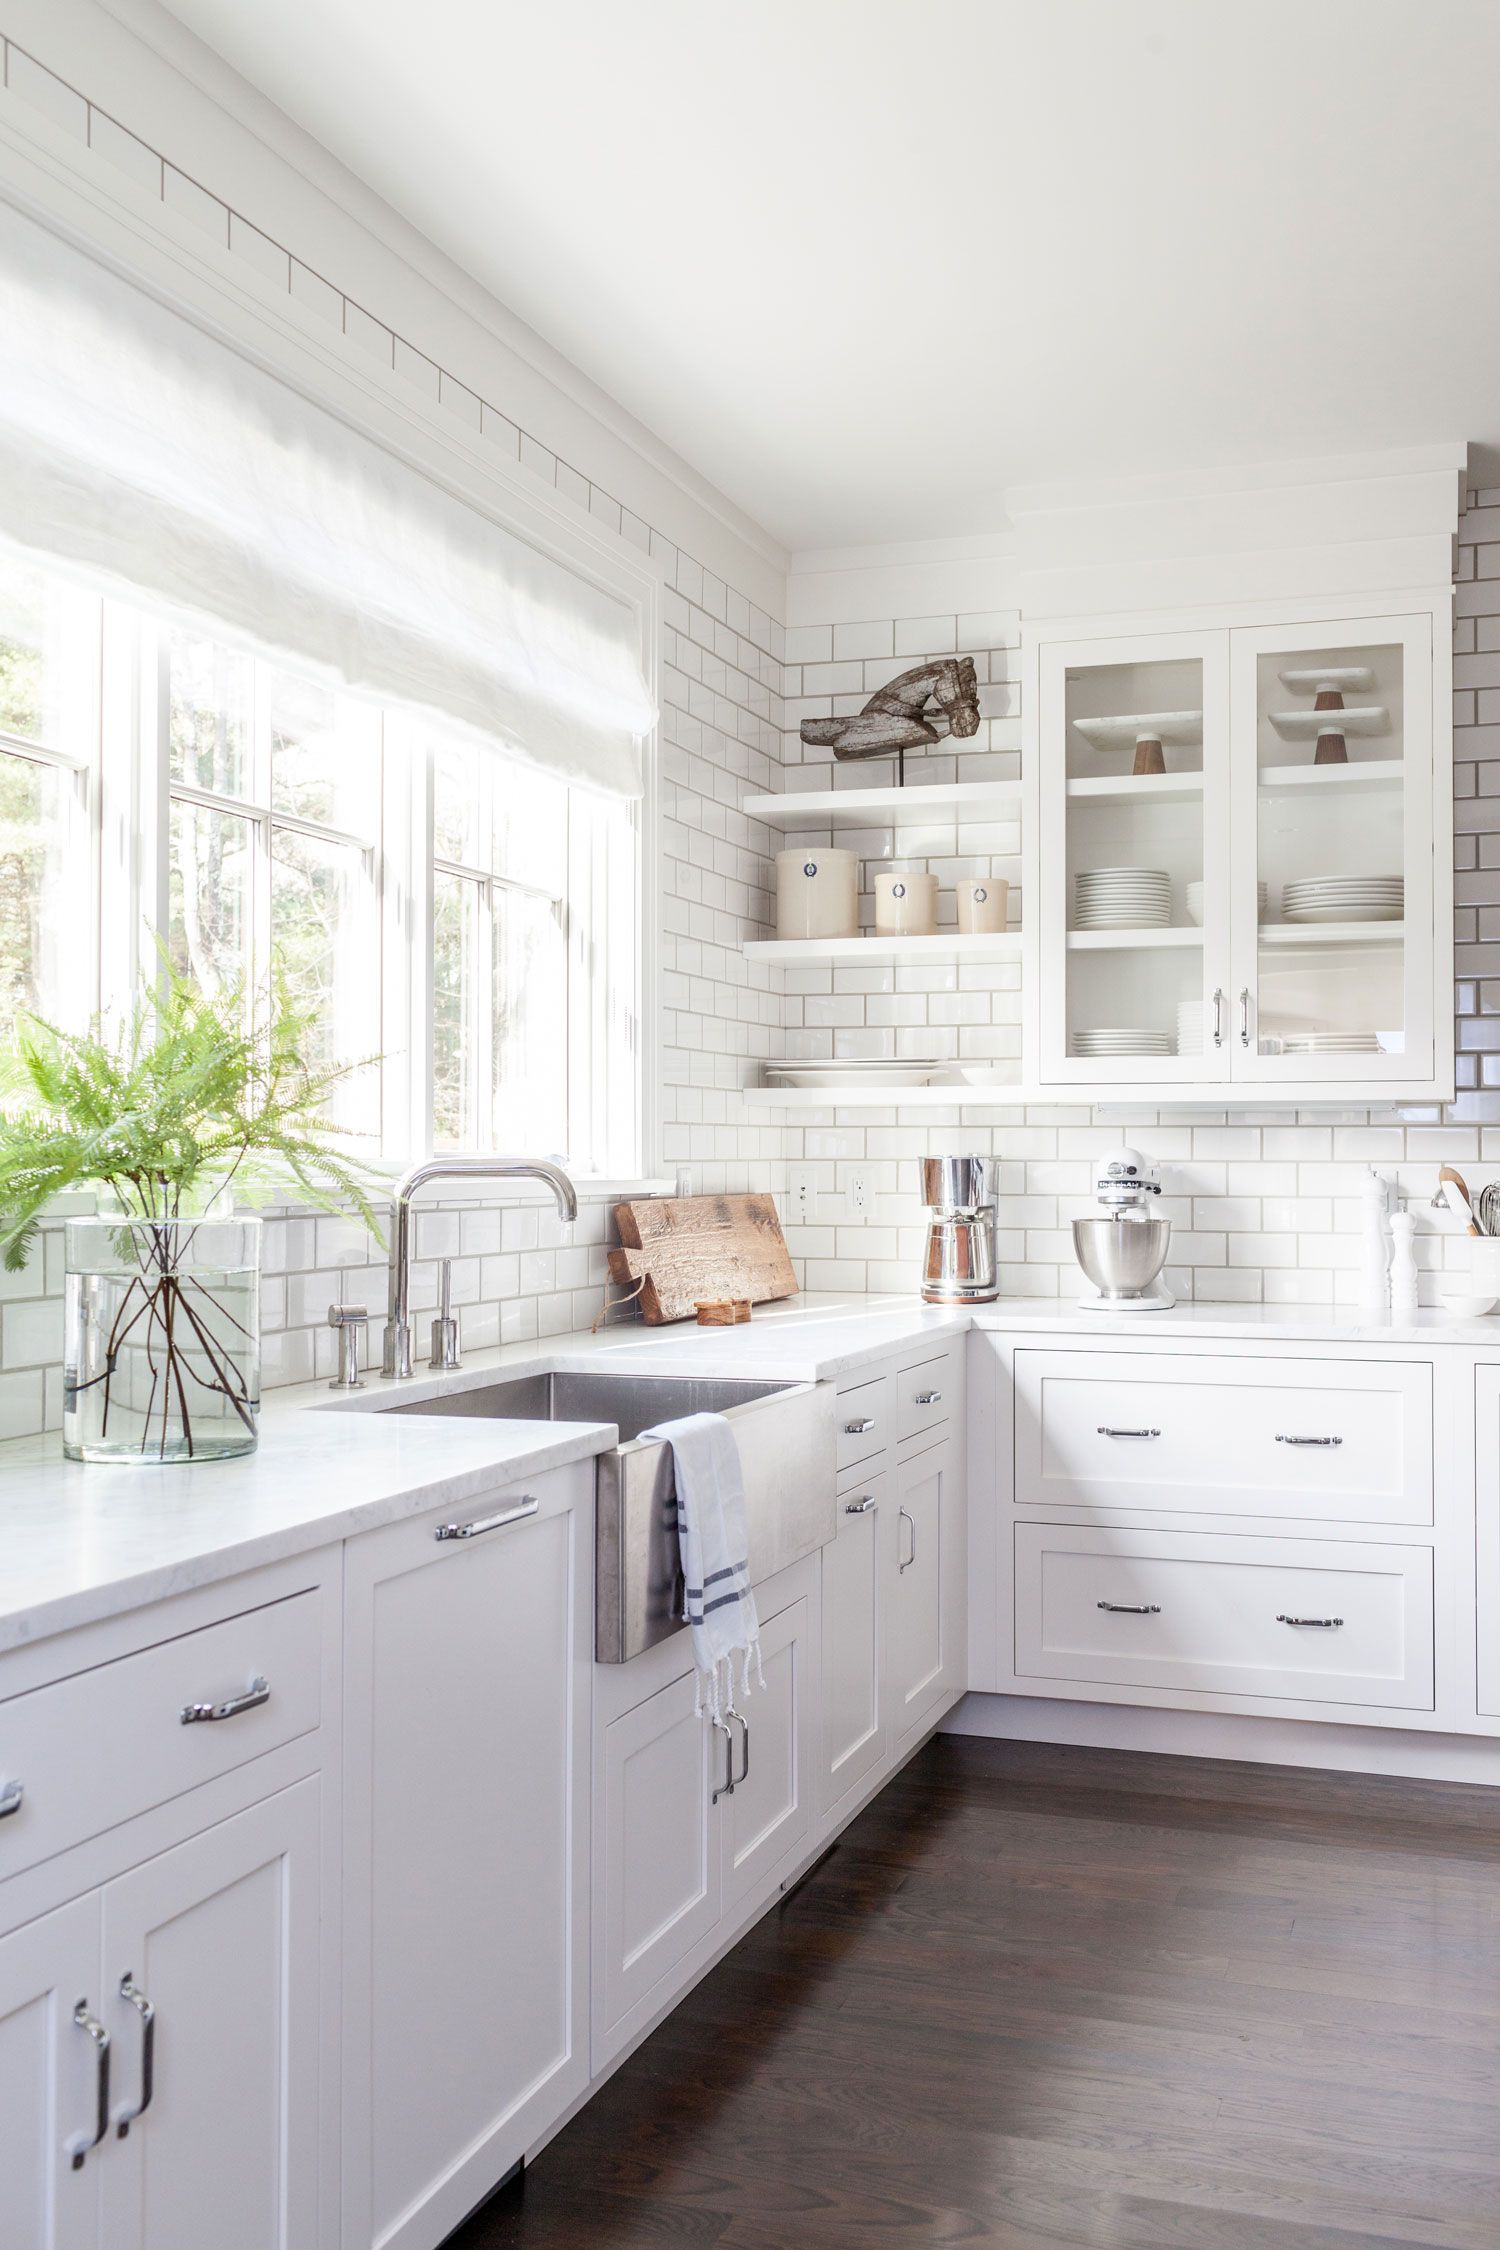 Kitchen Pics With White Cabinets An Old Farmhouse Because A Modern Gem Kitchen Design